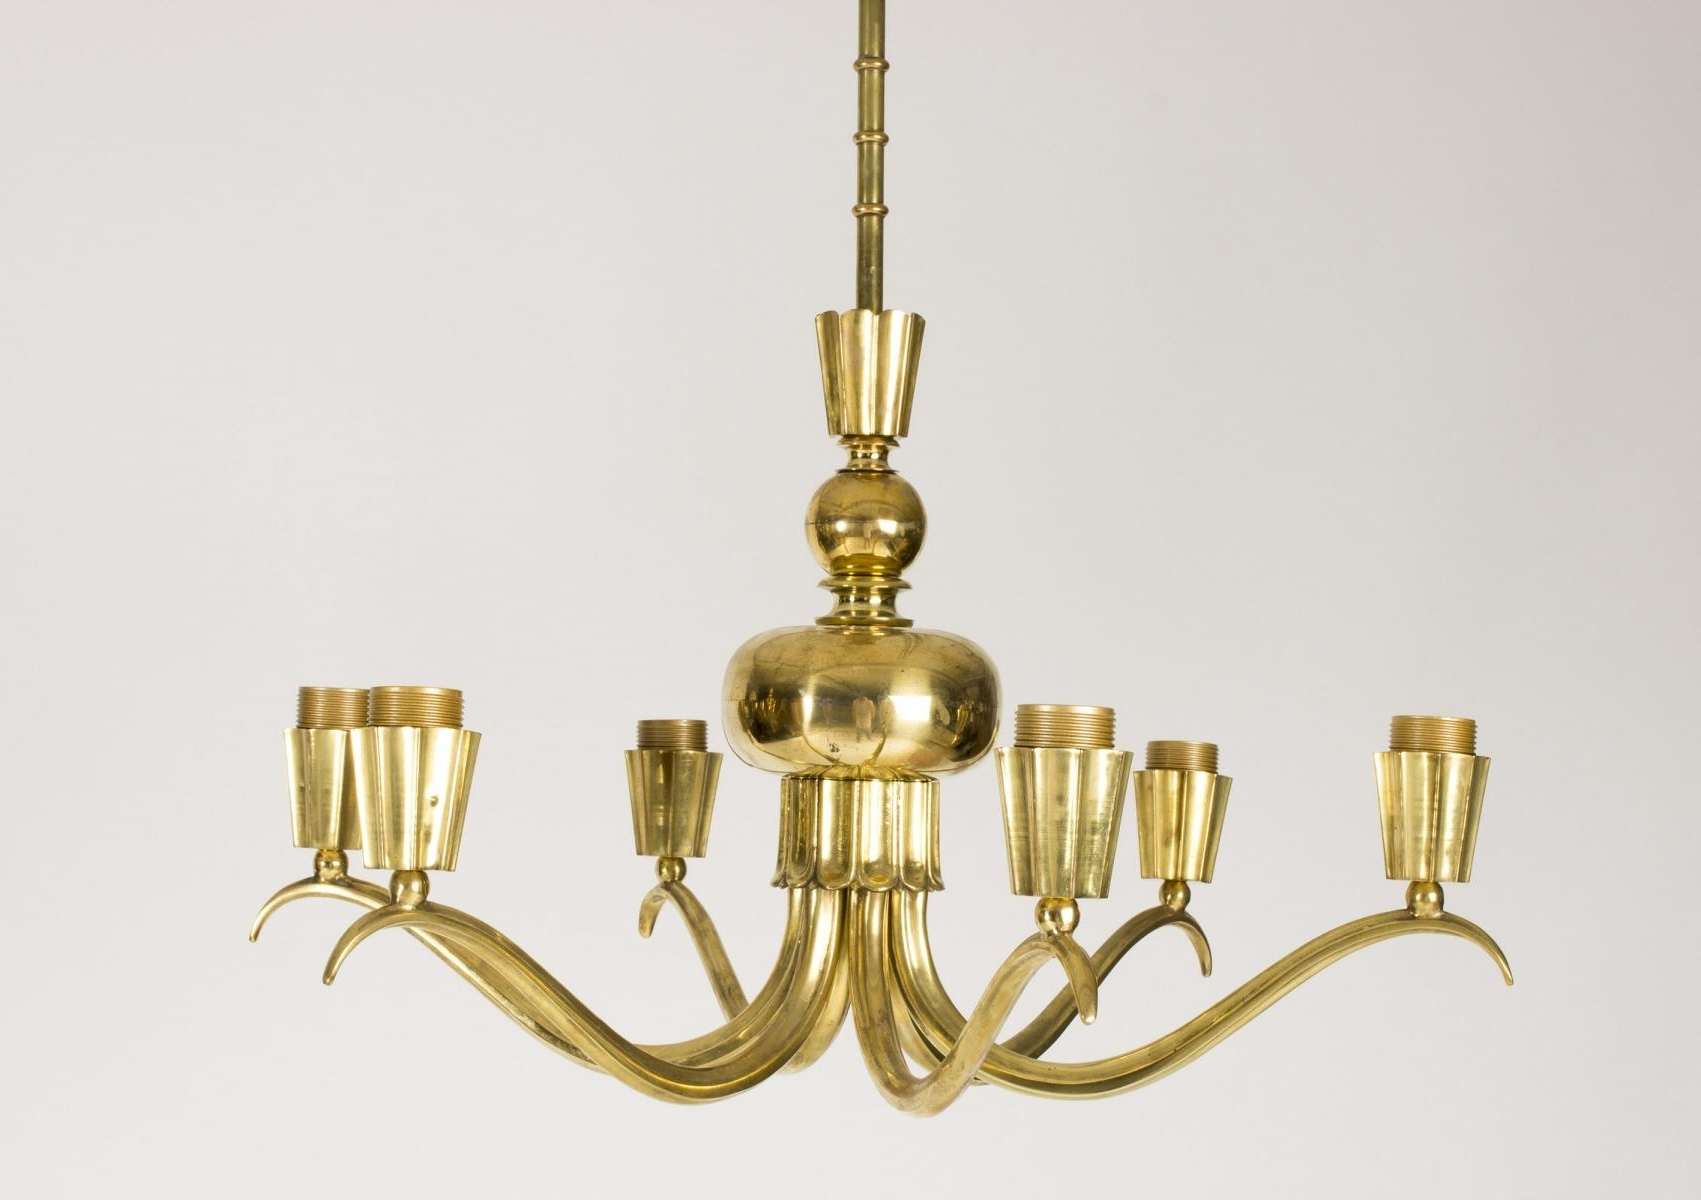 Brass Chandeliers With Regard To Latest Brass Chandeliers, 1940S, Set Of 2 For Sale At Pamono (View 3 of 15)